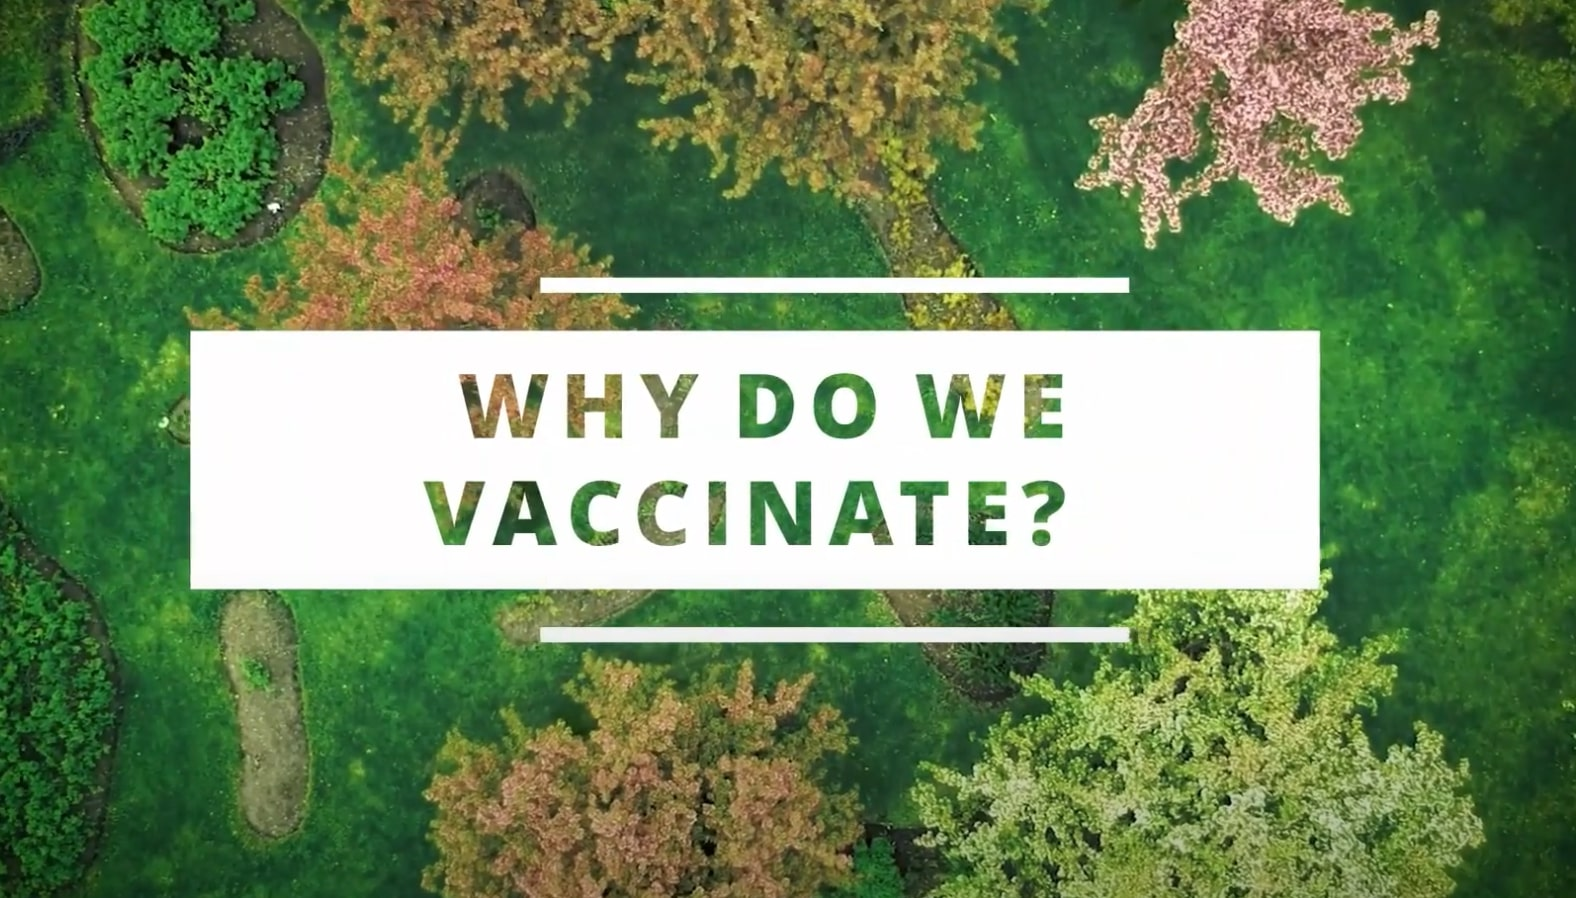 Why Do We Vaccinate?